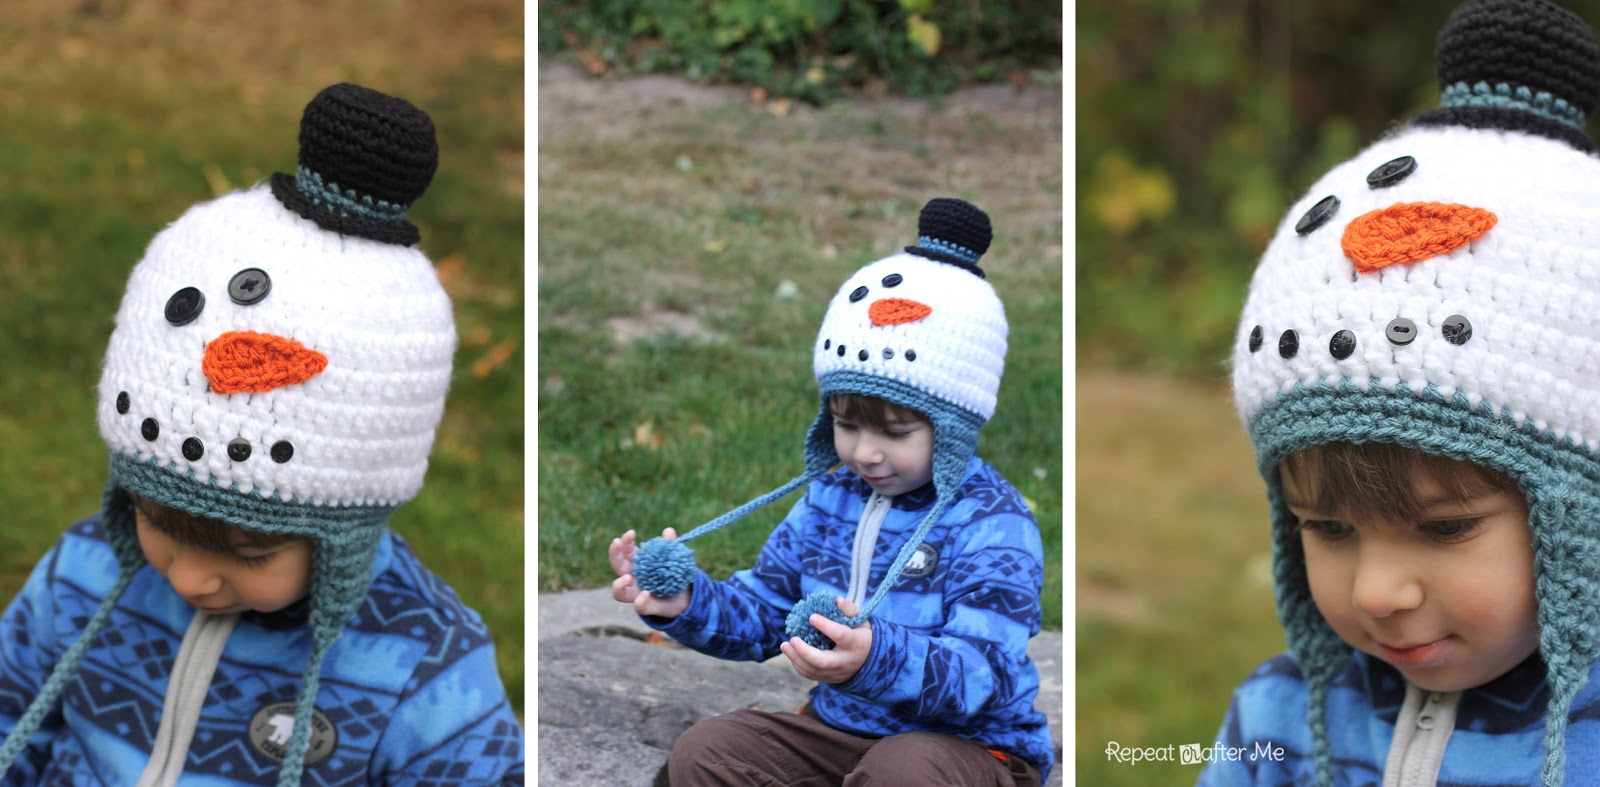 Crochet snowman hat pattern repeat crafter me crochet snowman hat pattern bankloansurffo Gallery